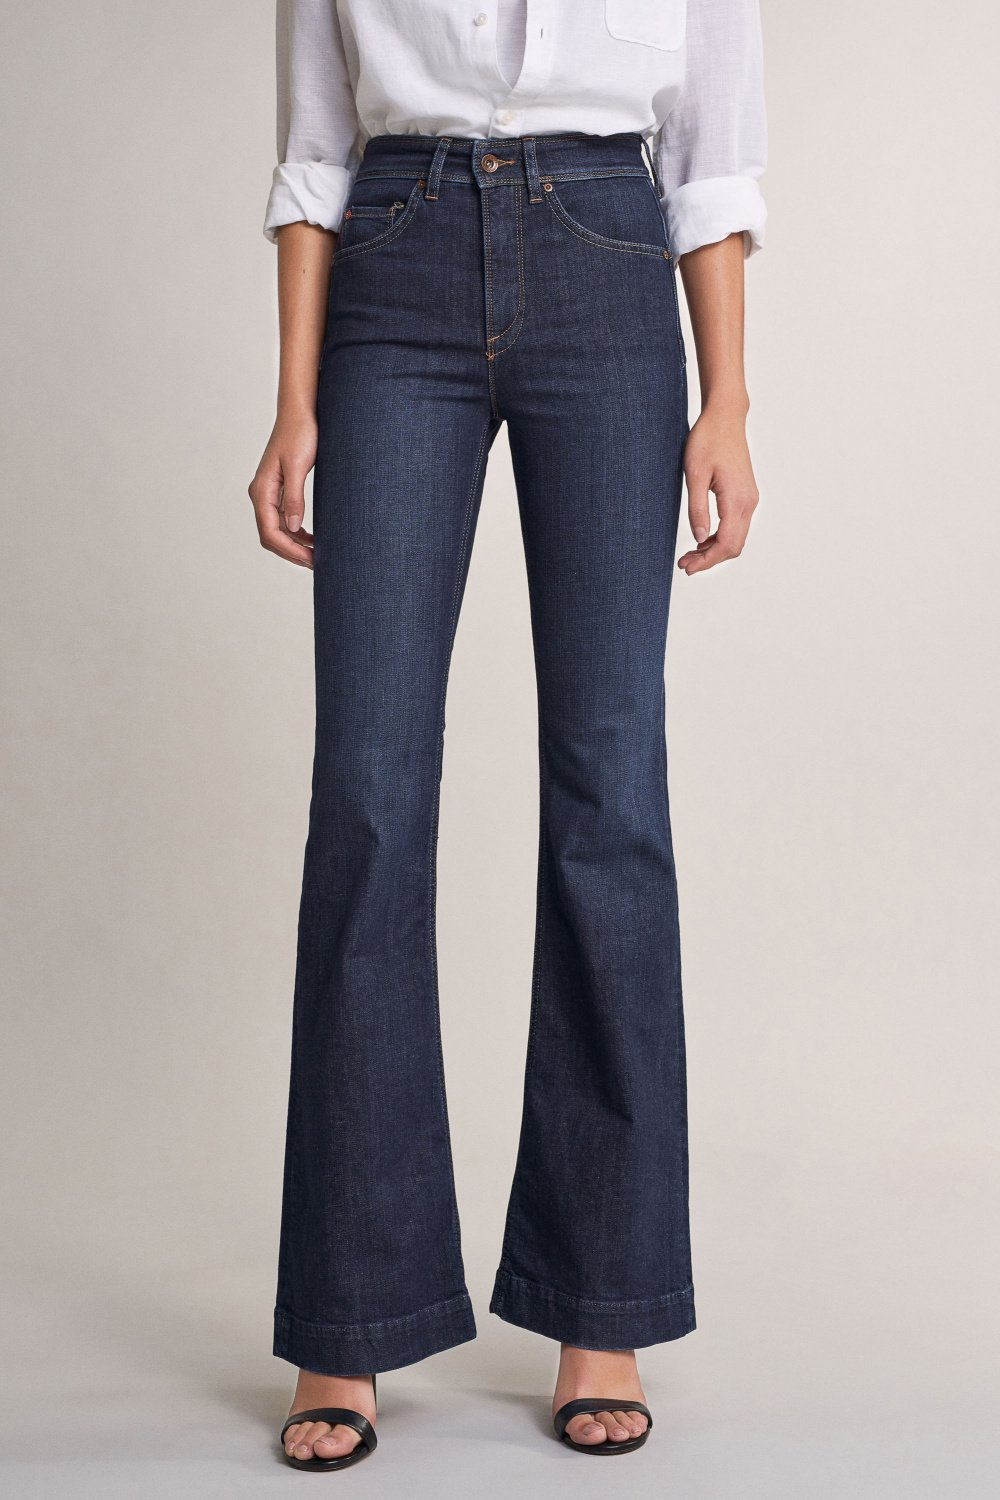 Jeans Secret Glamour, Push In, Flare - Salsa